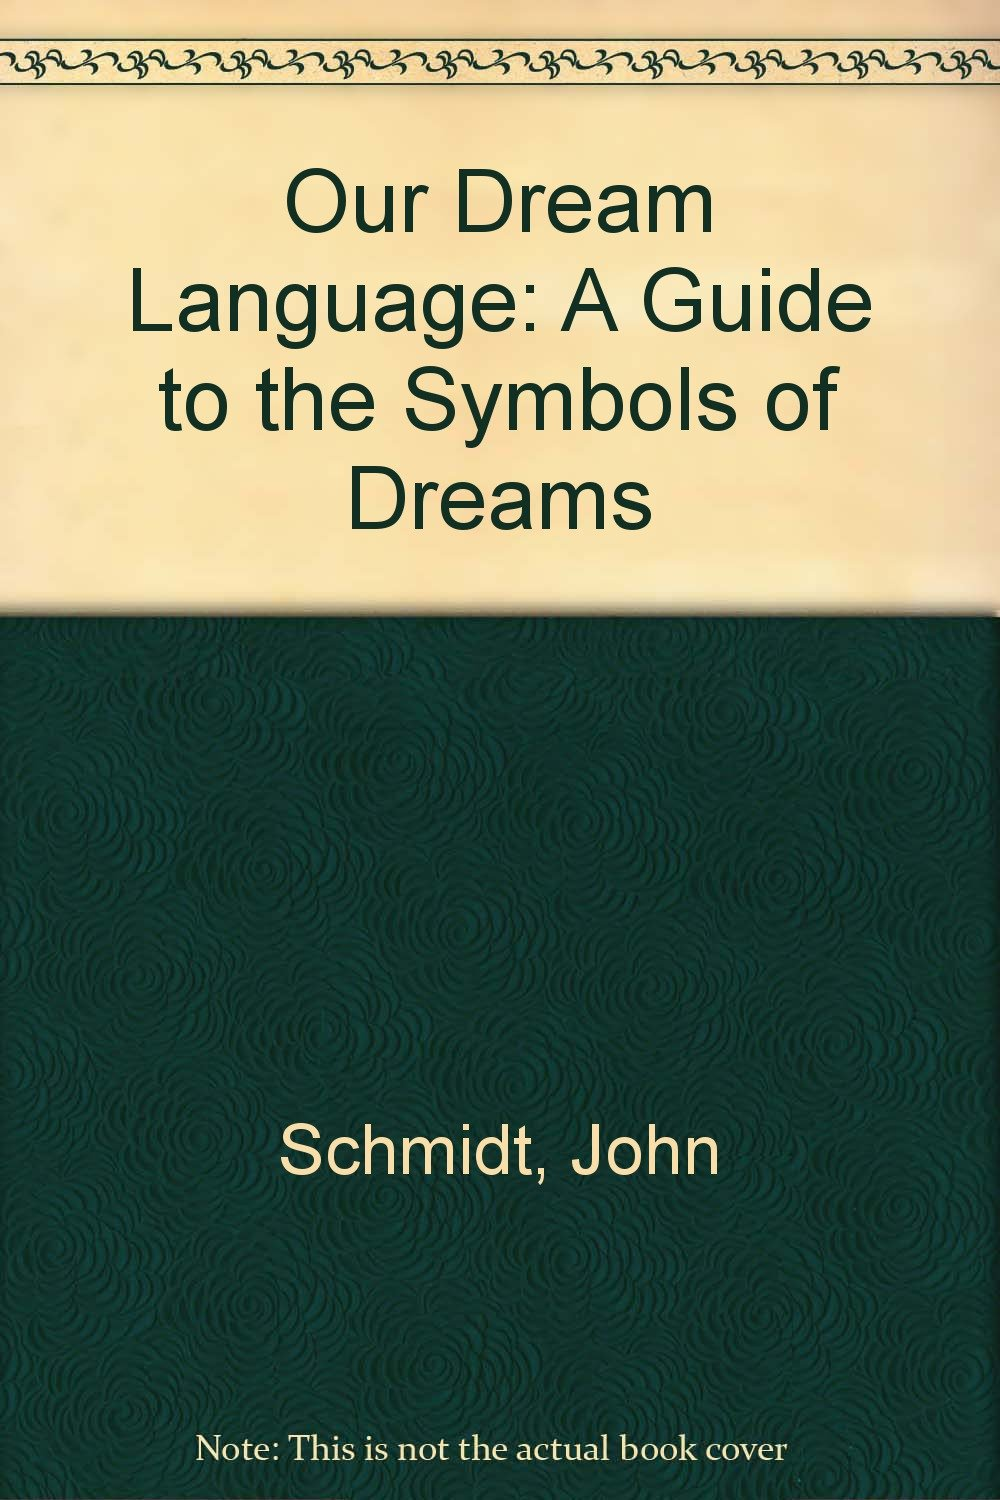 Our dream language a guide to the symbols of dreams john schmidt our dream language a guide to the symbols of dreams john schmidt 9780931832284 amazon books buycottarizona